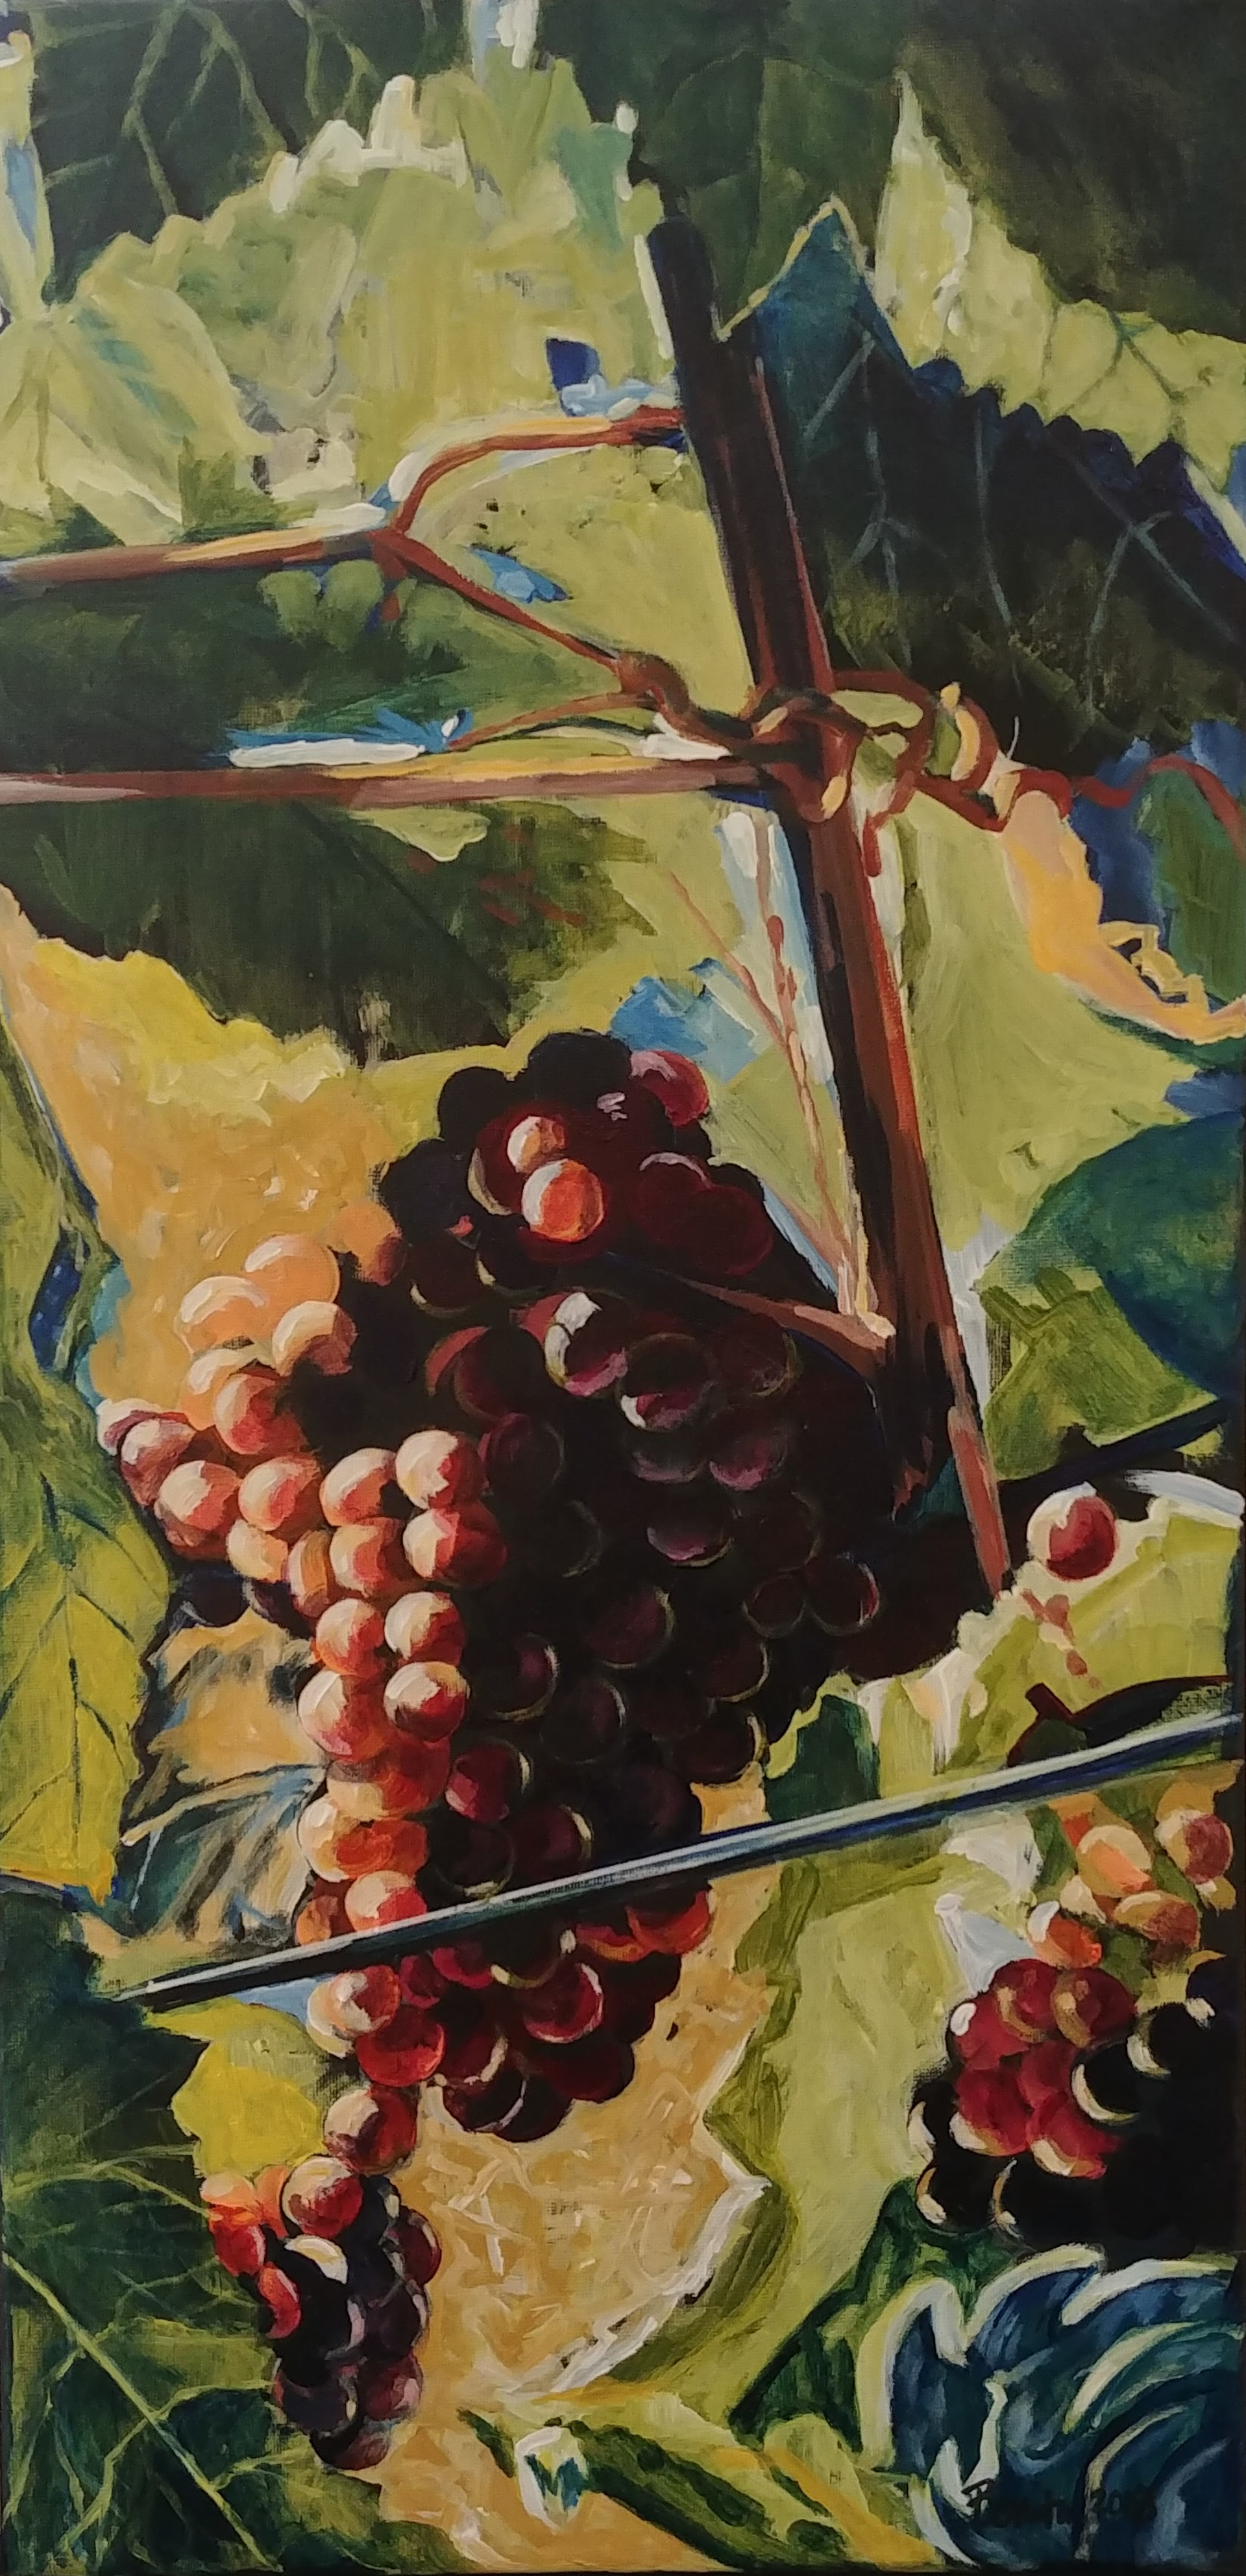 Grapes on the Vine by Benita Cole (McMinnville, OR)